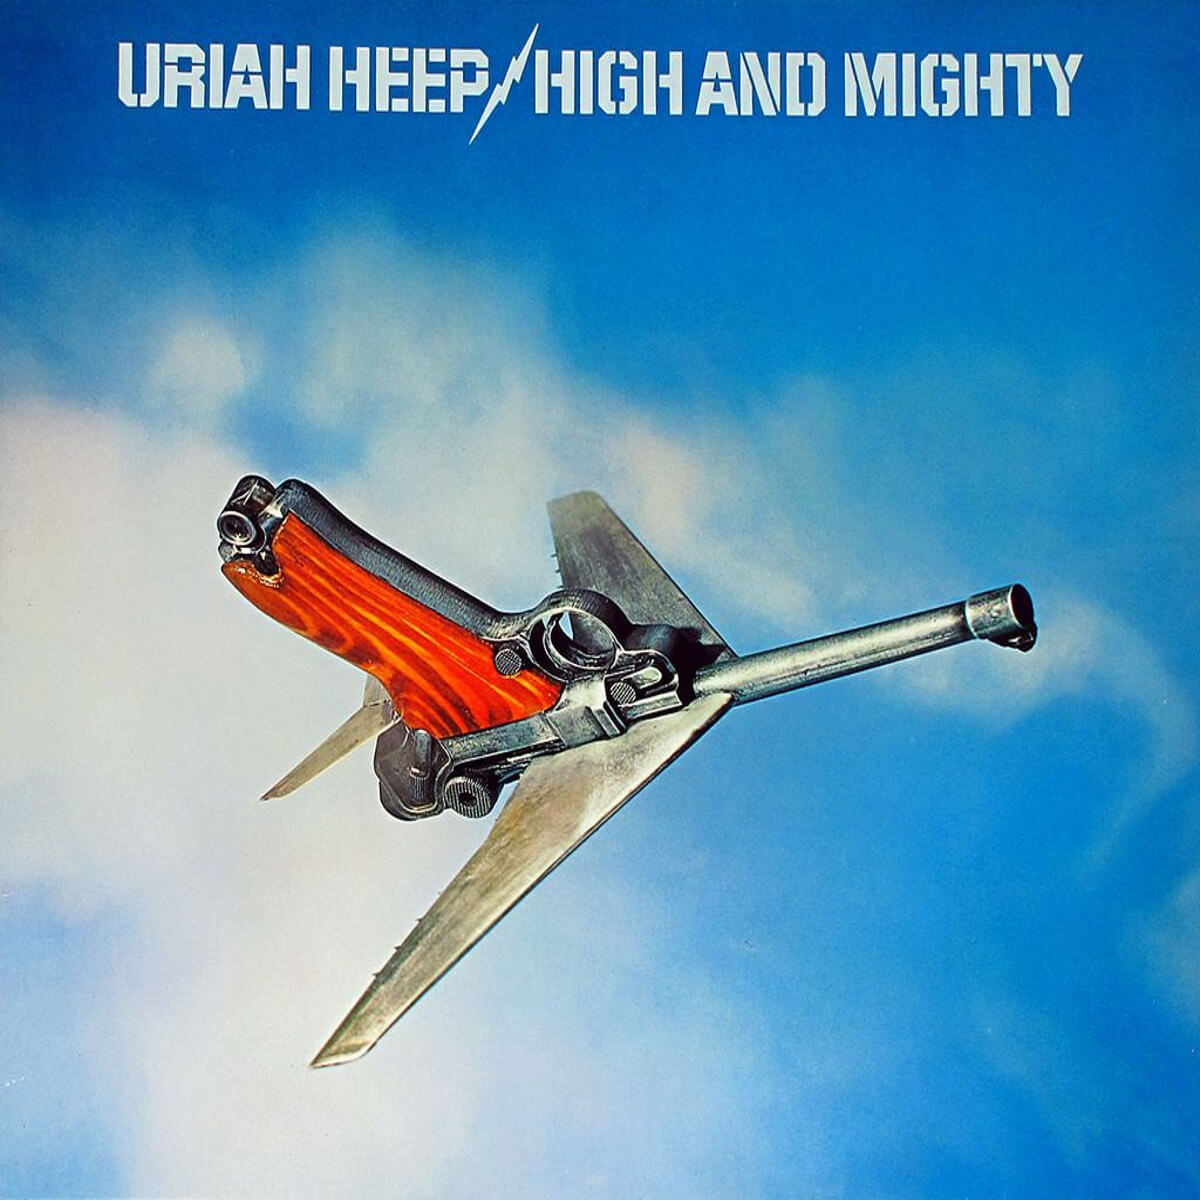 Uriah Heep - High and Mighty - Vivil Cover